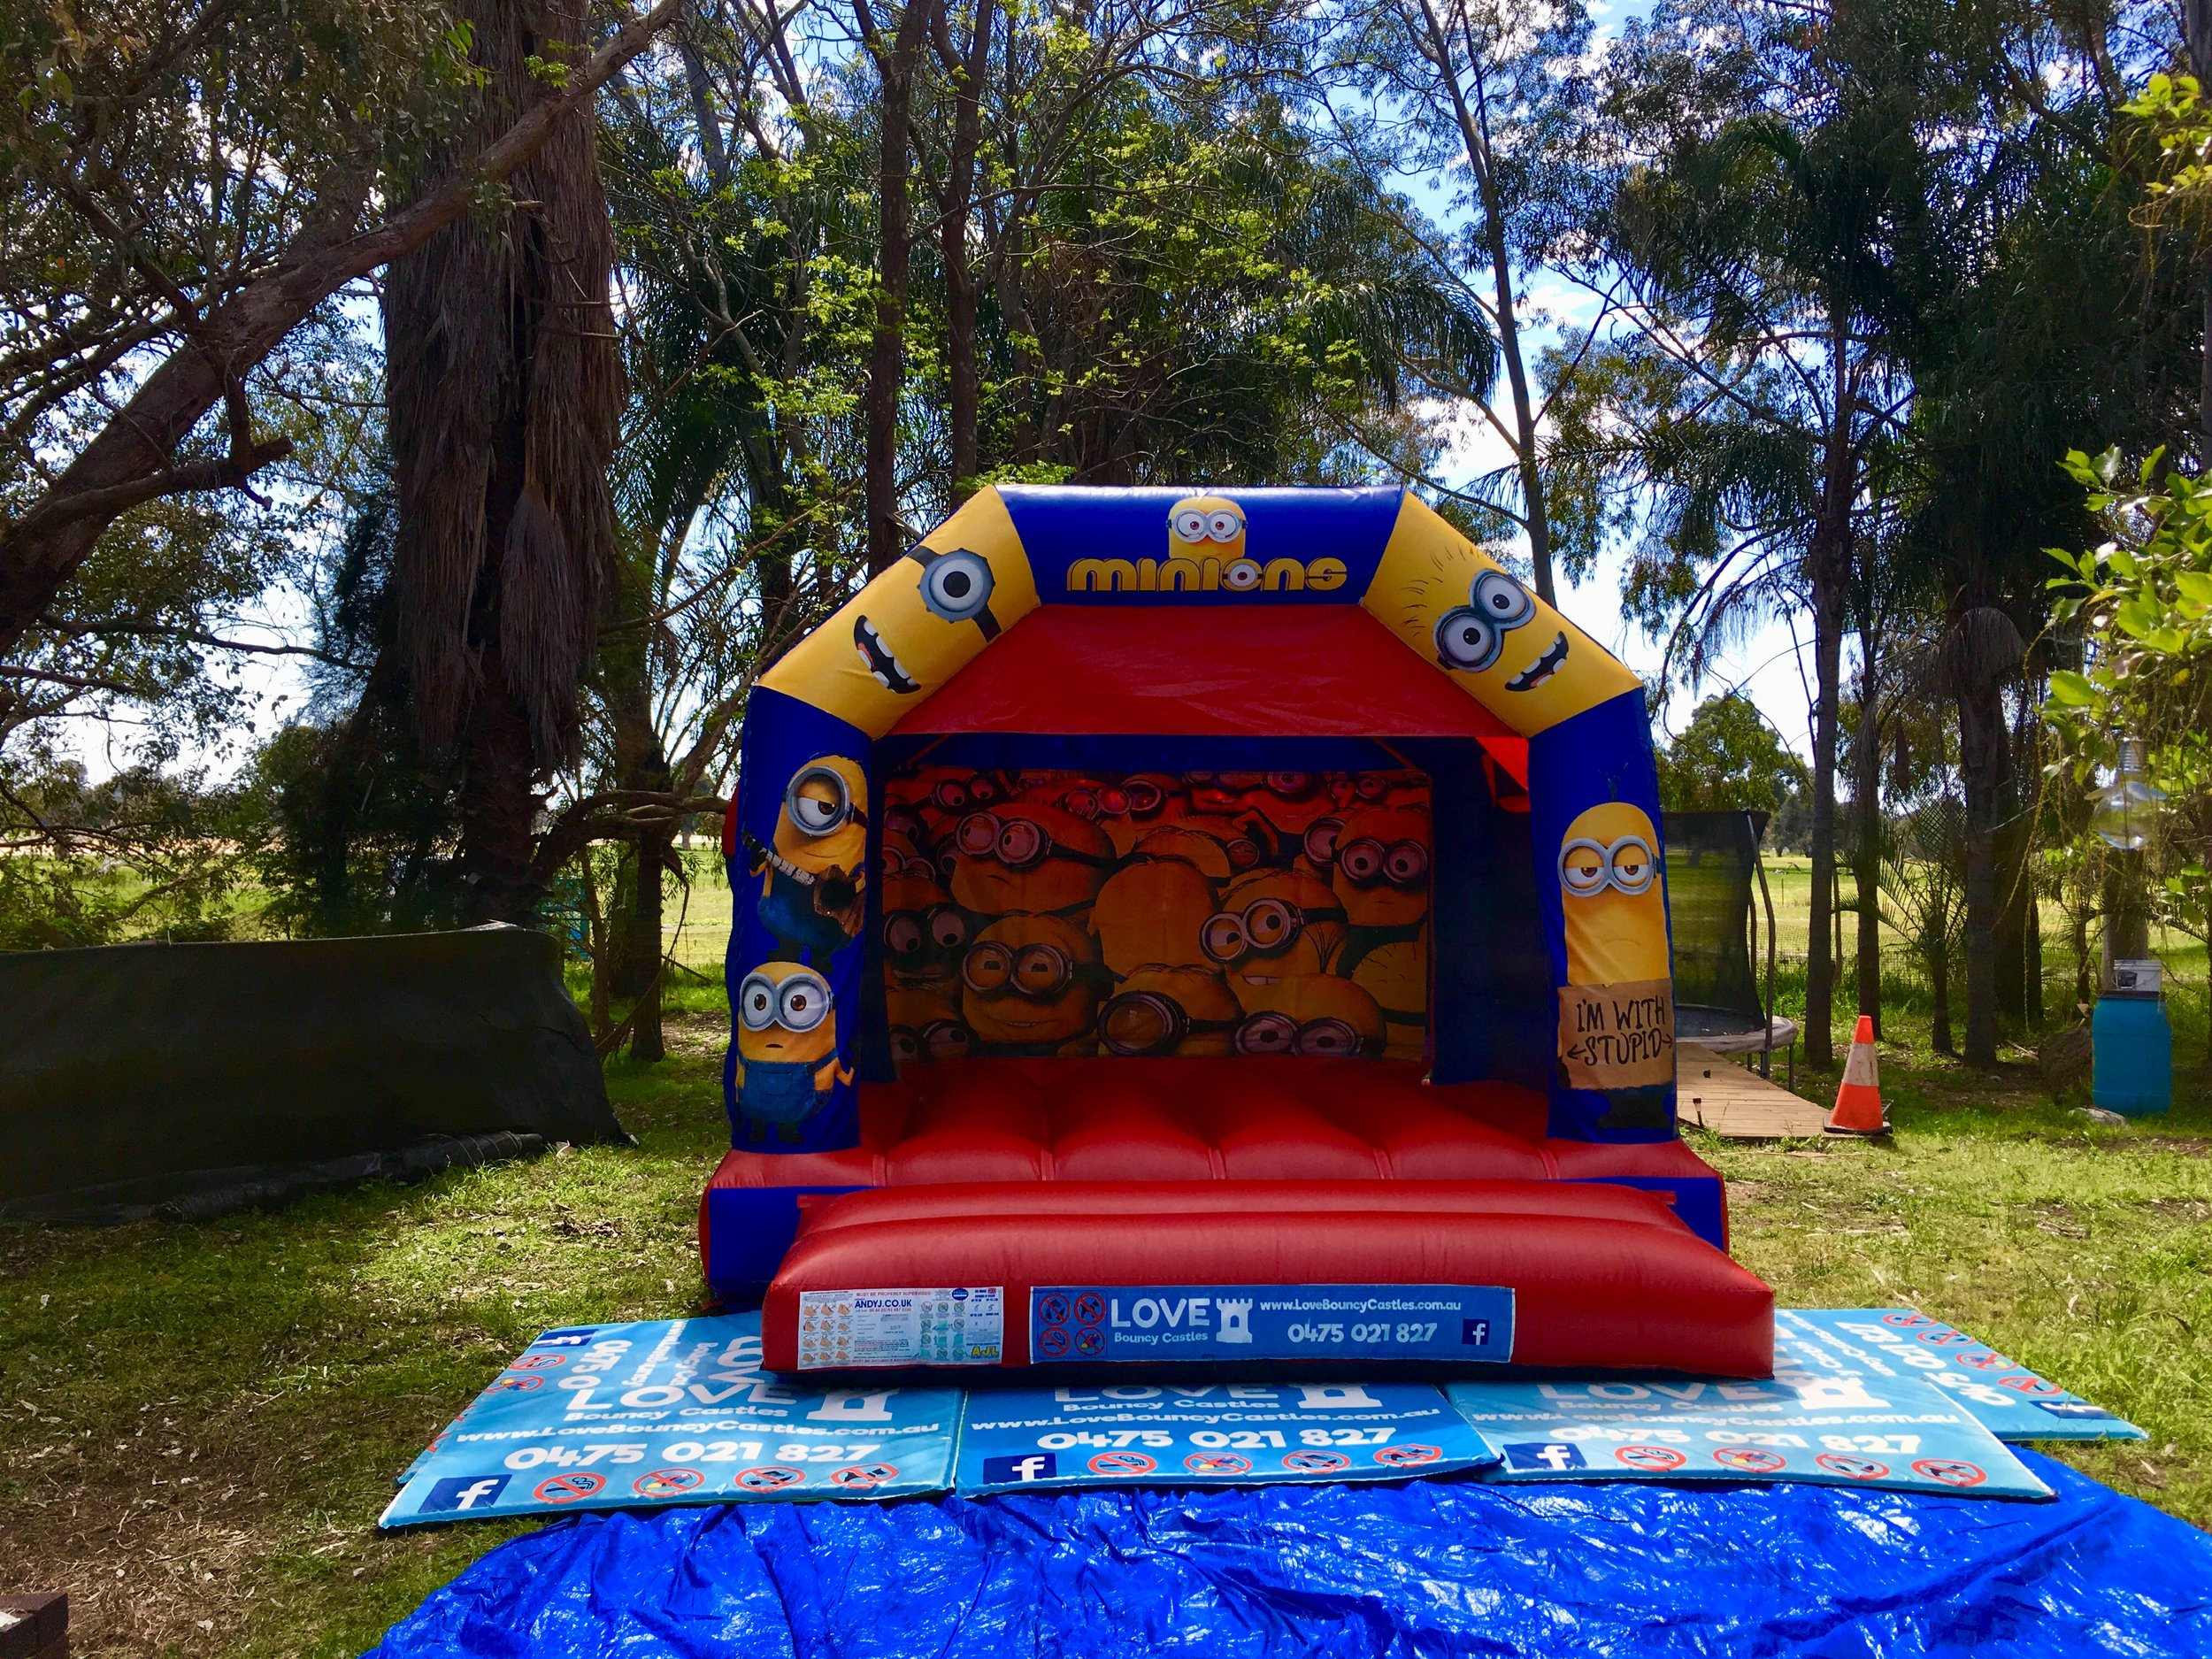 Copy of Minions Jumping Castle Hire Perth, WA